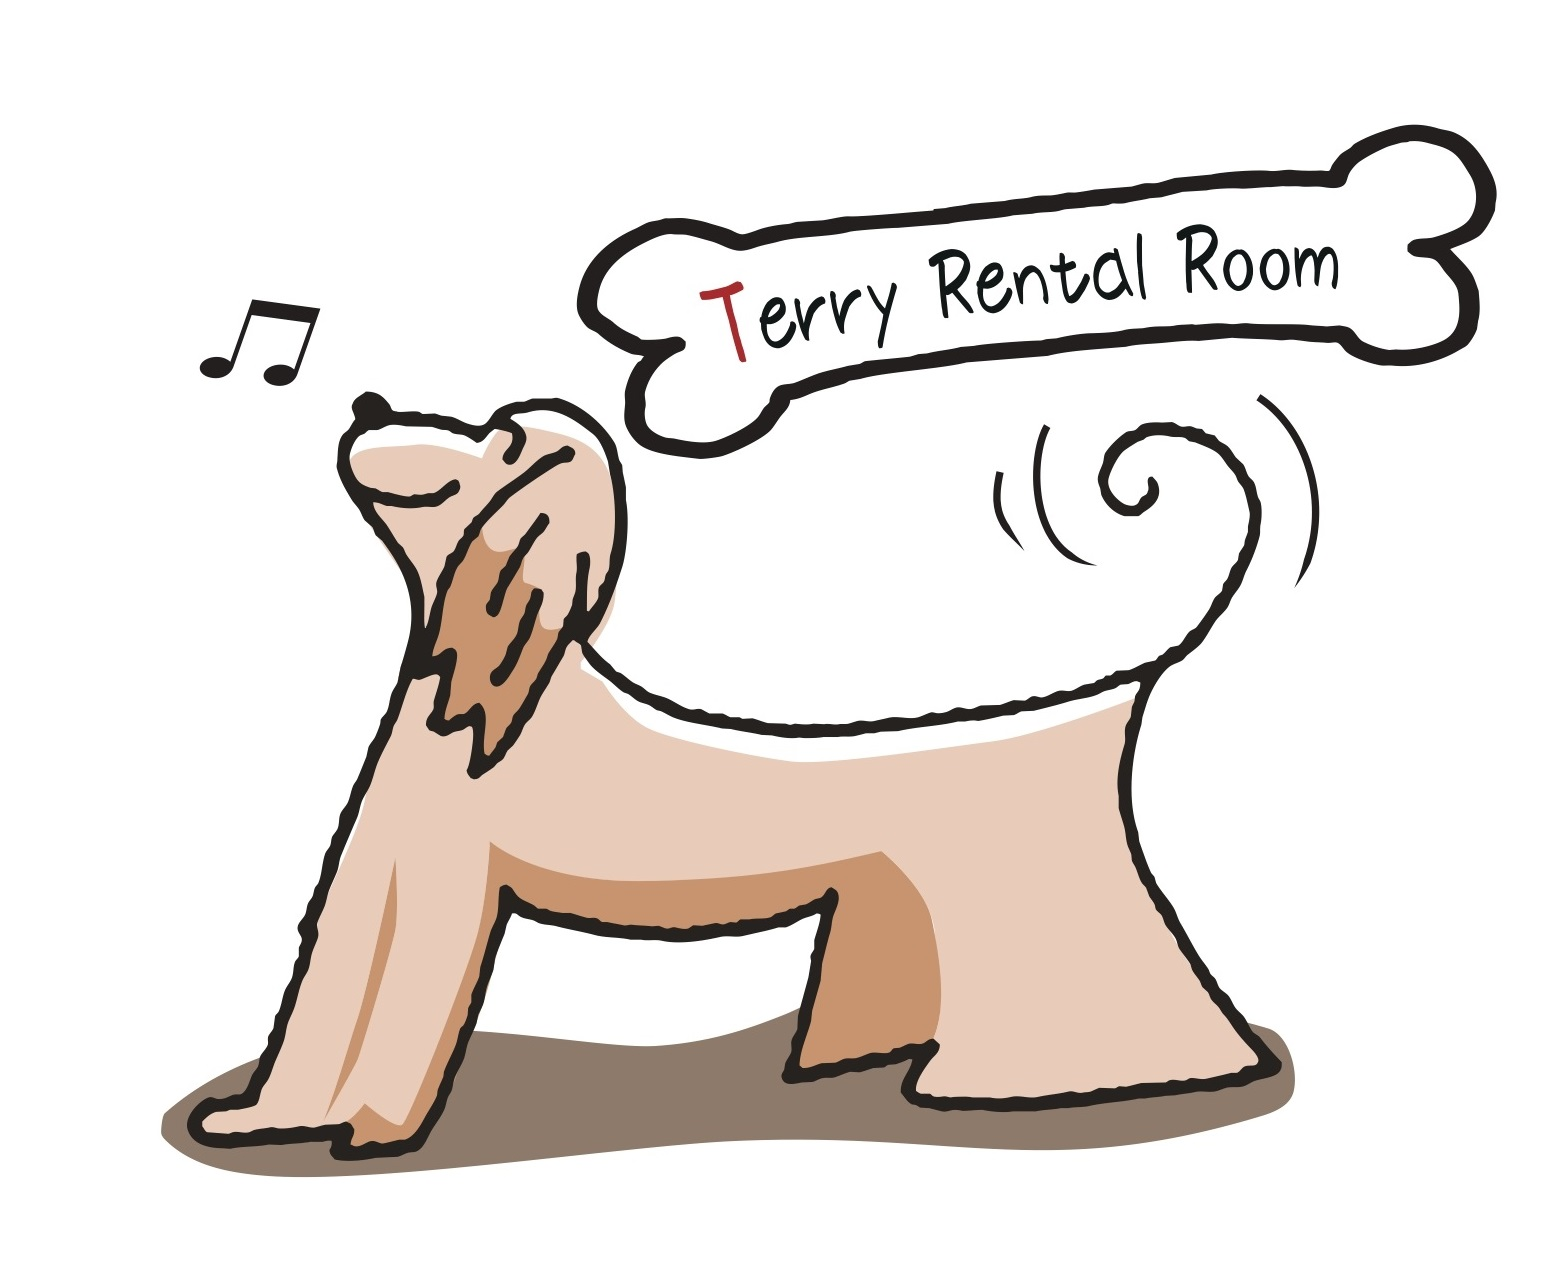 Terry Rental Room